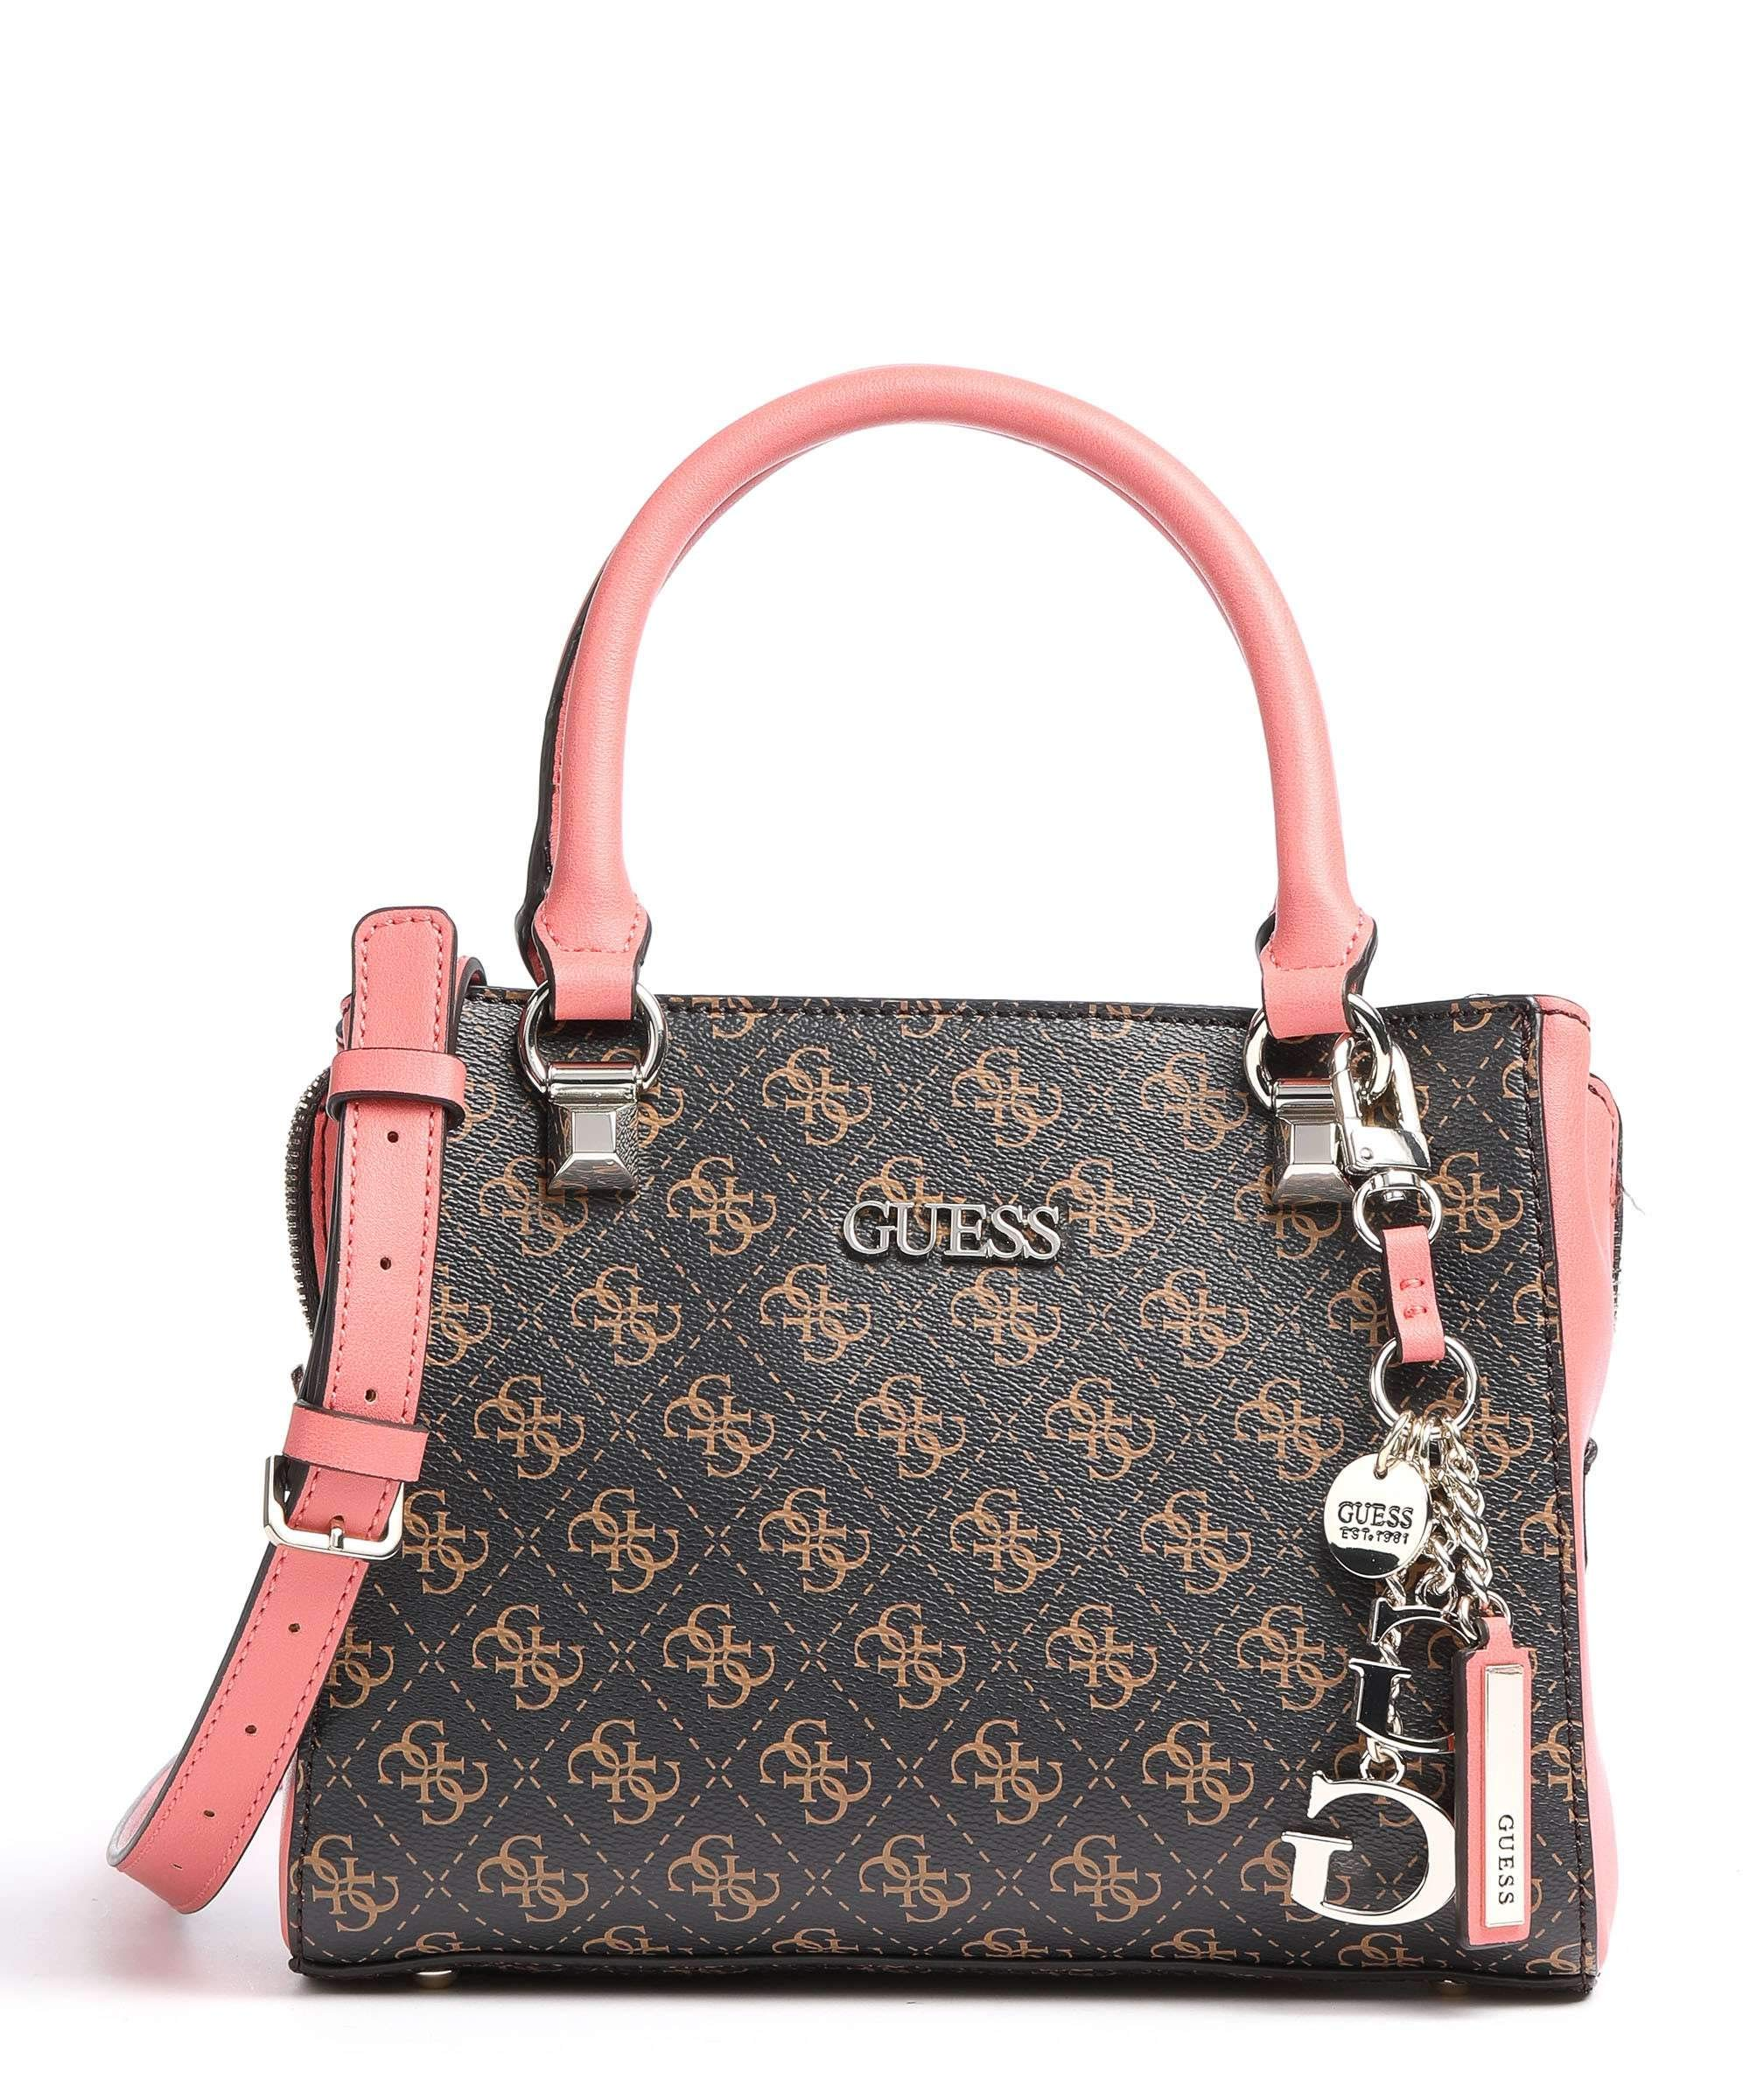 GUESS CAMY SMALL GIRLFRIEND SATCHEL